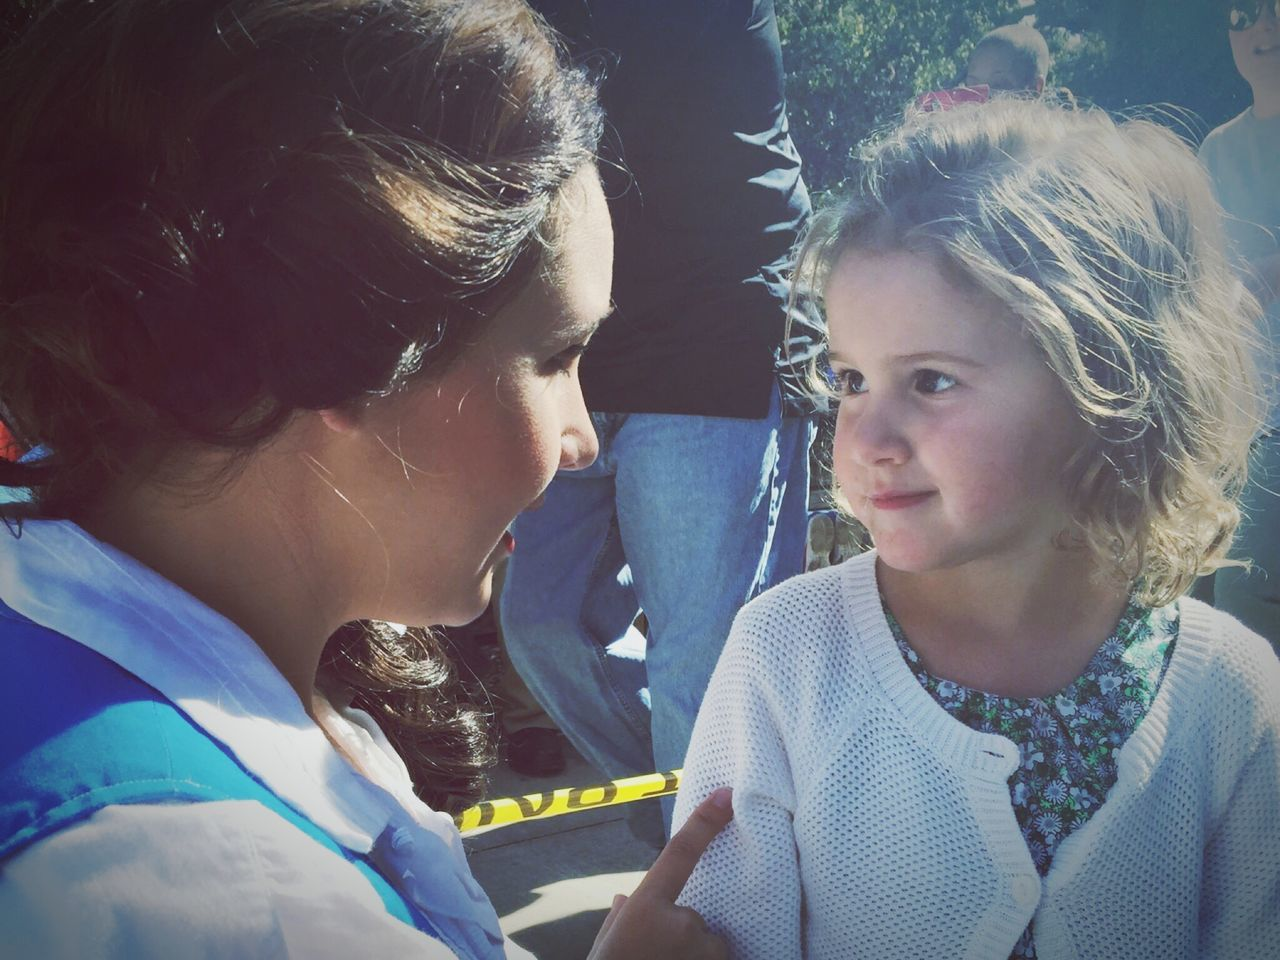 Bellamy meeting one of her favourite princesses, Belle Two People Girls Real People Leisure Activity Childhood Close-up Day Togetherness Outdoors People EyeEm Storybook Character Books Festival Fun Kidsphotography Kids Portrait